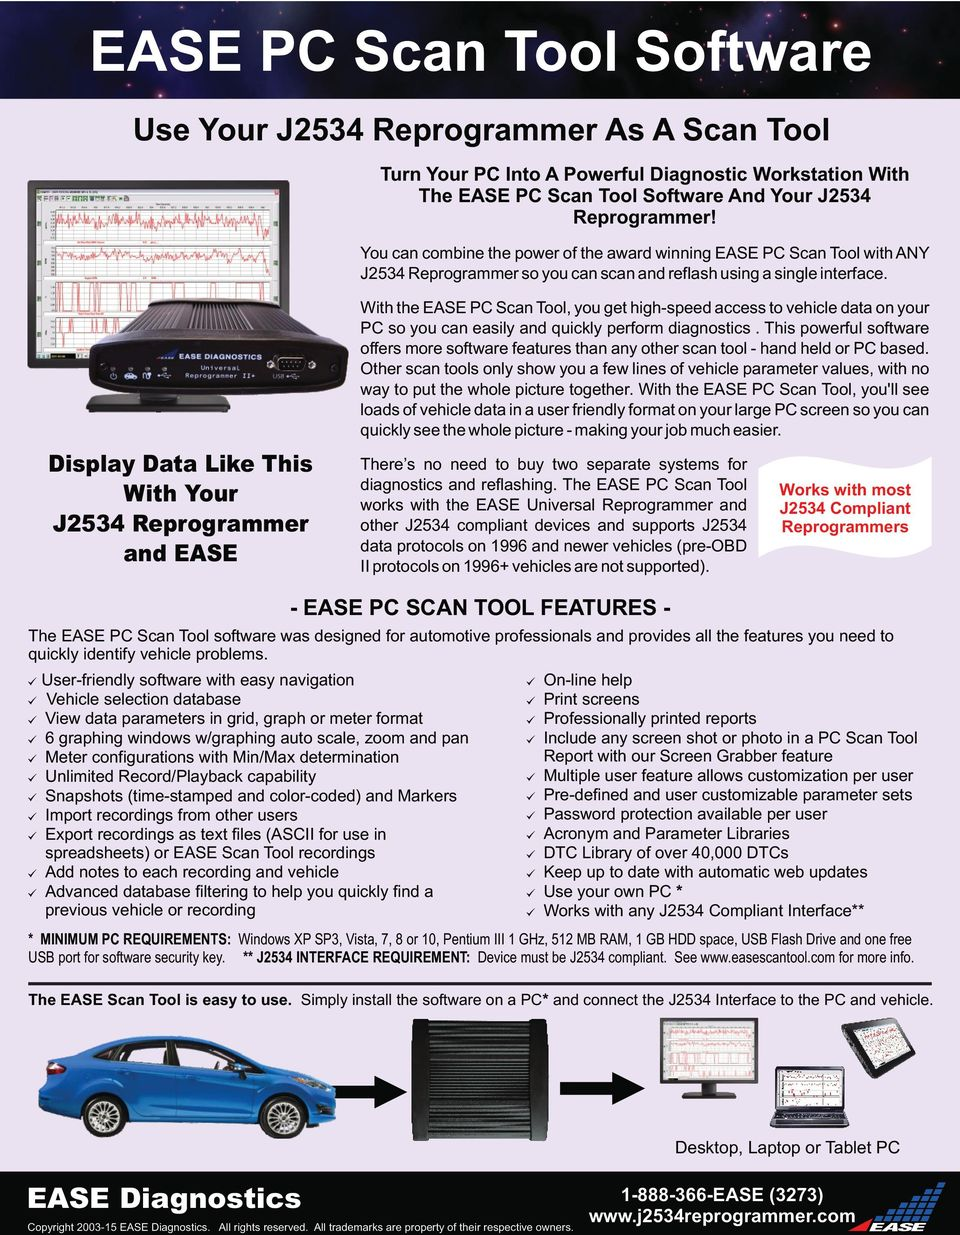 Reprogram Vehicles Using The EASE Universal Reprogrammer II+